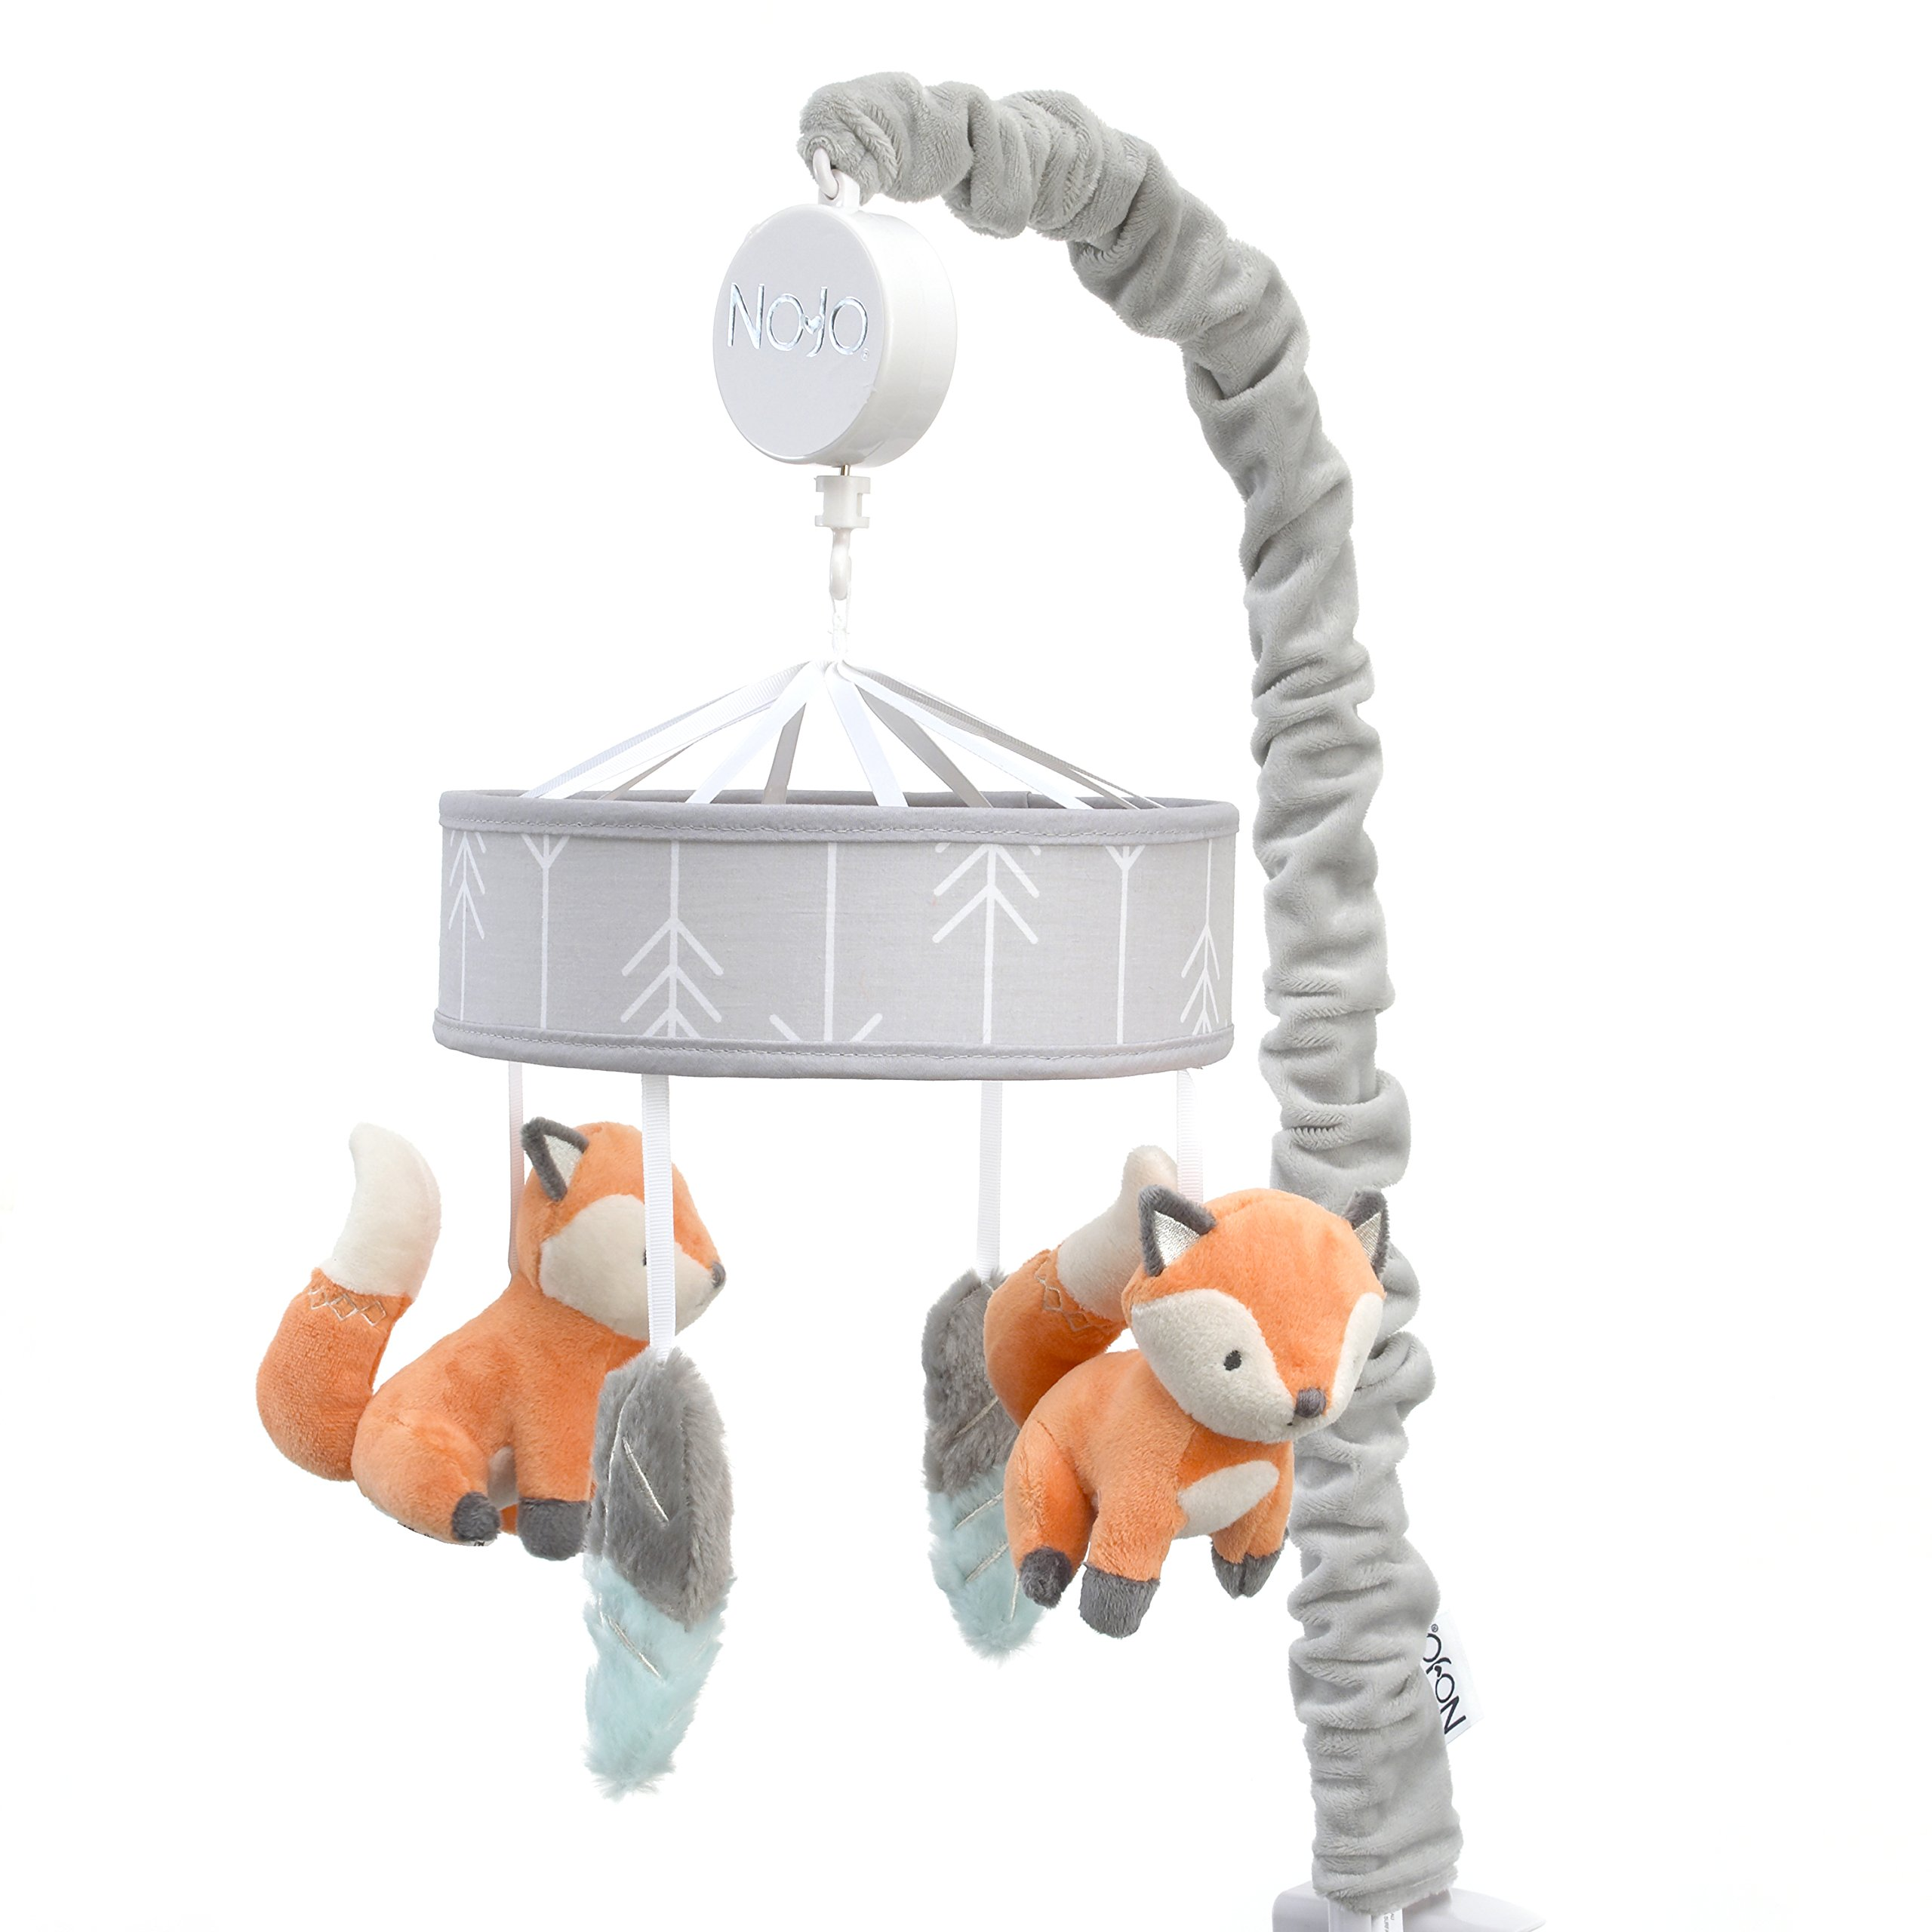 NoJo Aztec Mix & Match Nursery Crib Musical Mobile, Orange, Grey, Aqua, White, Feather